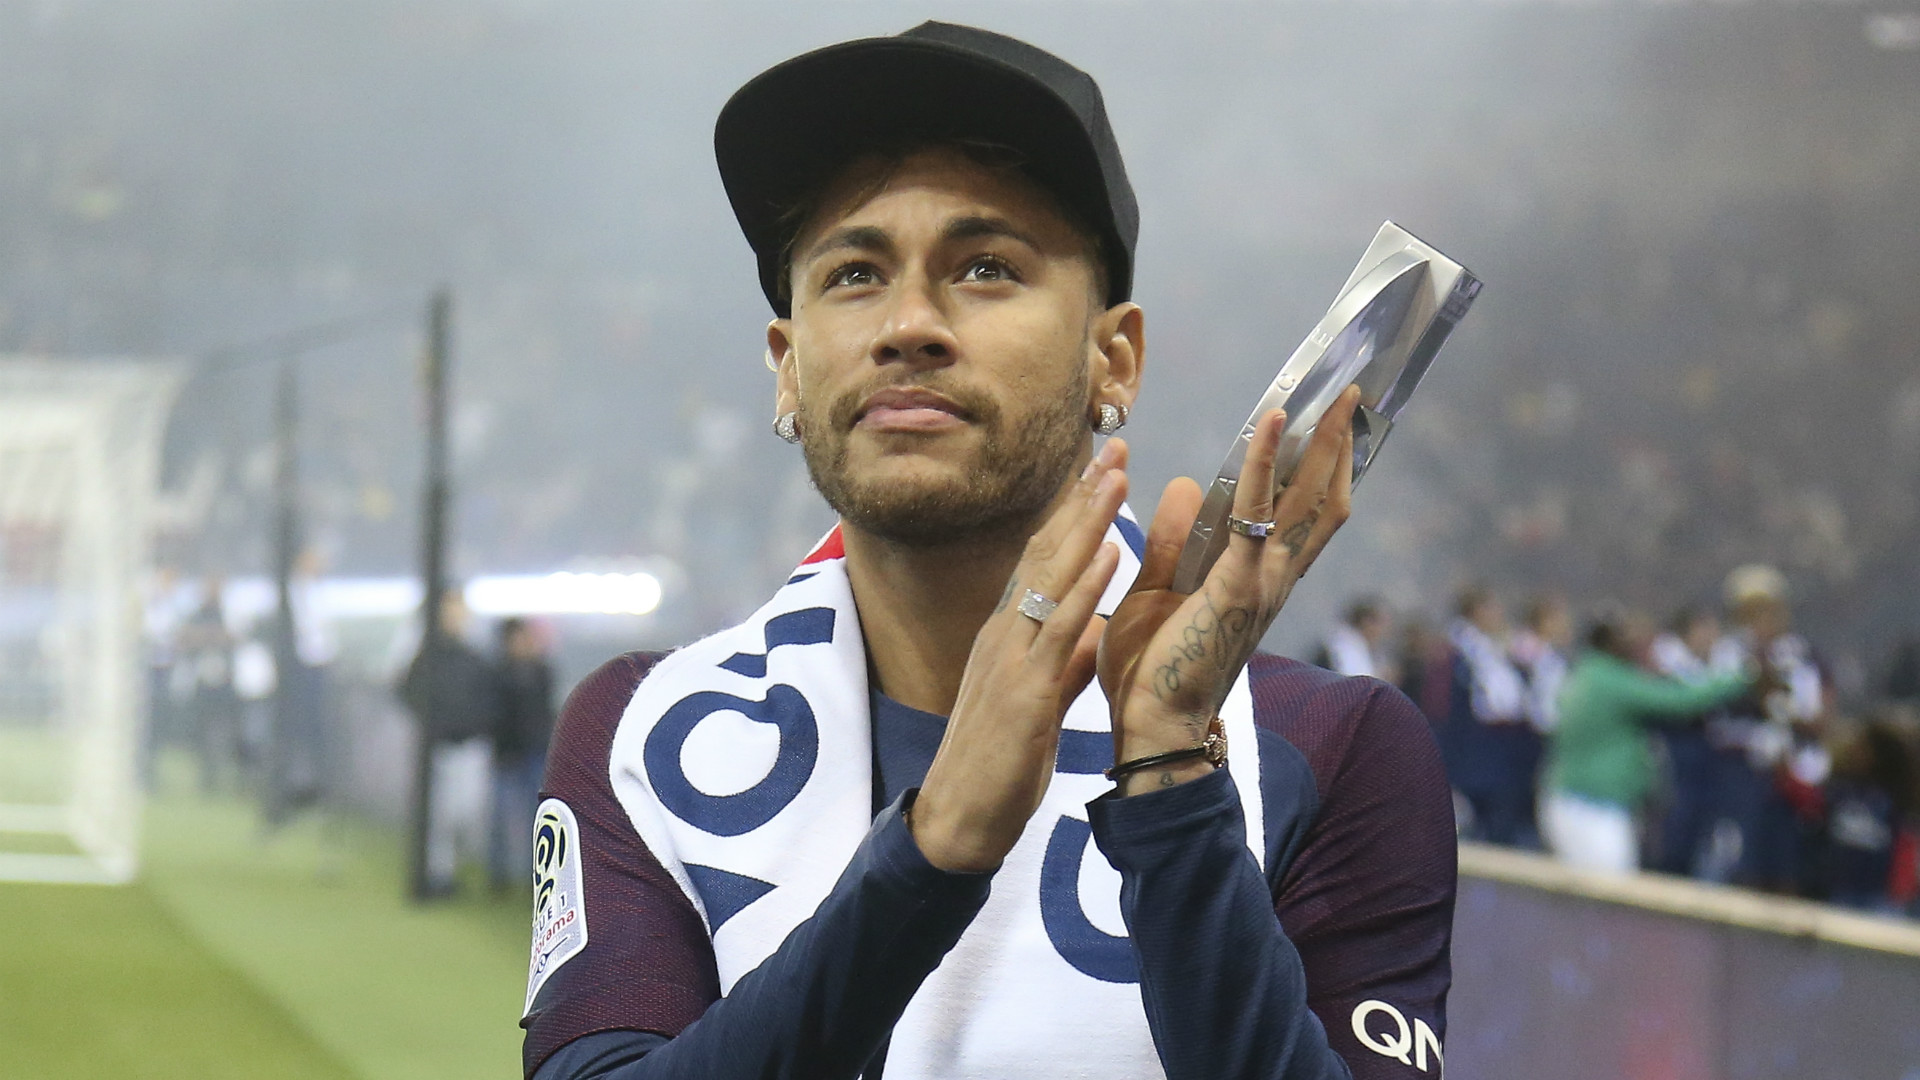 Neymar insists he will stay at PSG to win titles